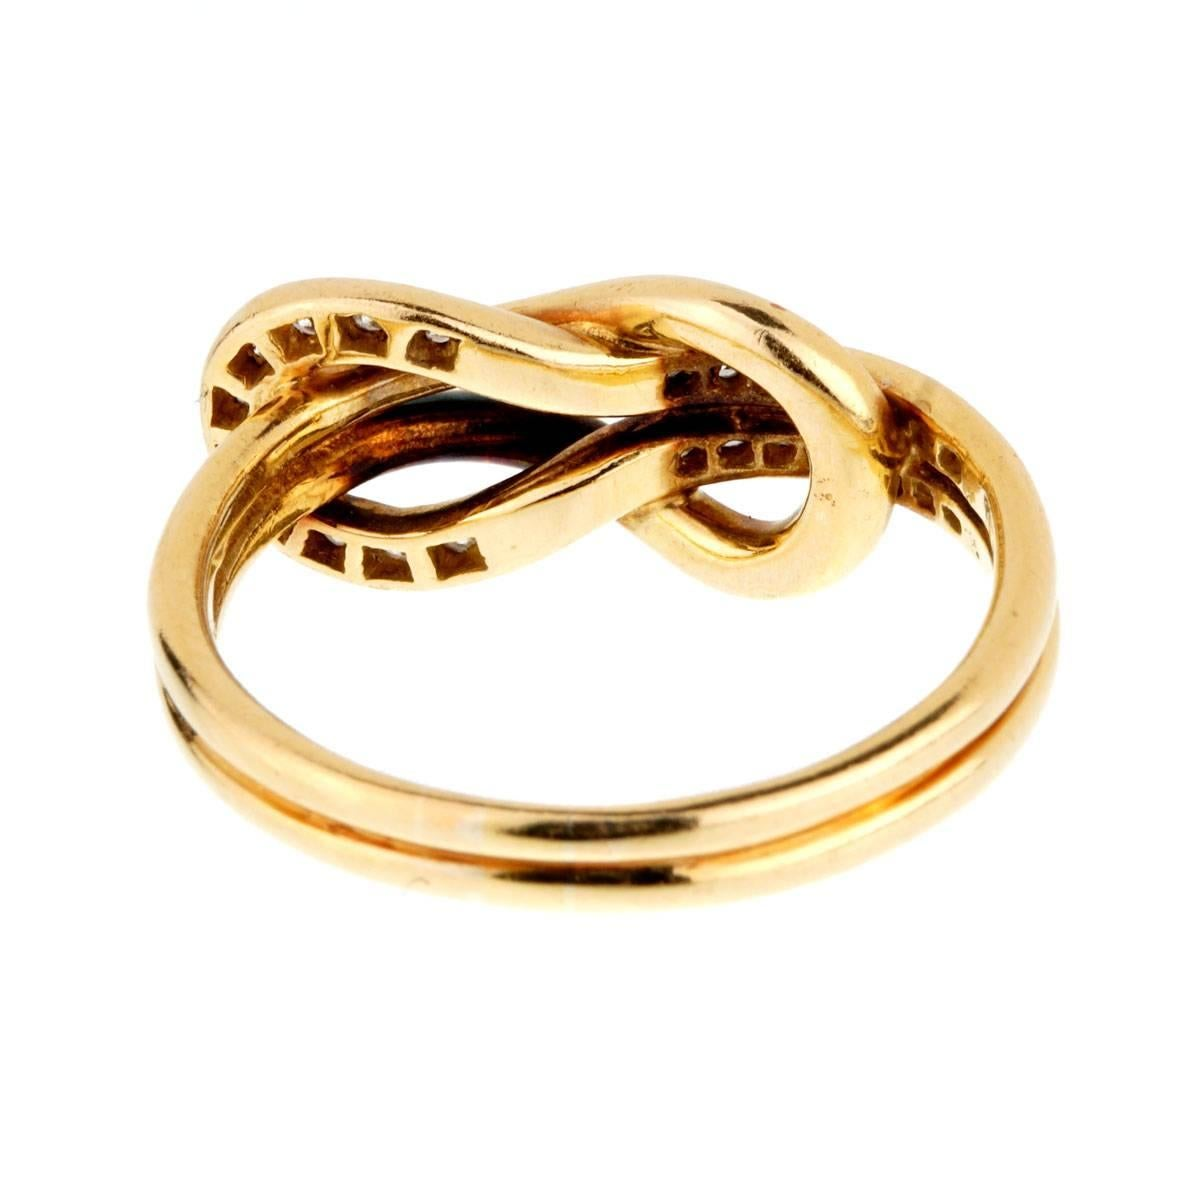 Cartier Diamond Gold Love Knot Ring At 1stdibs